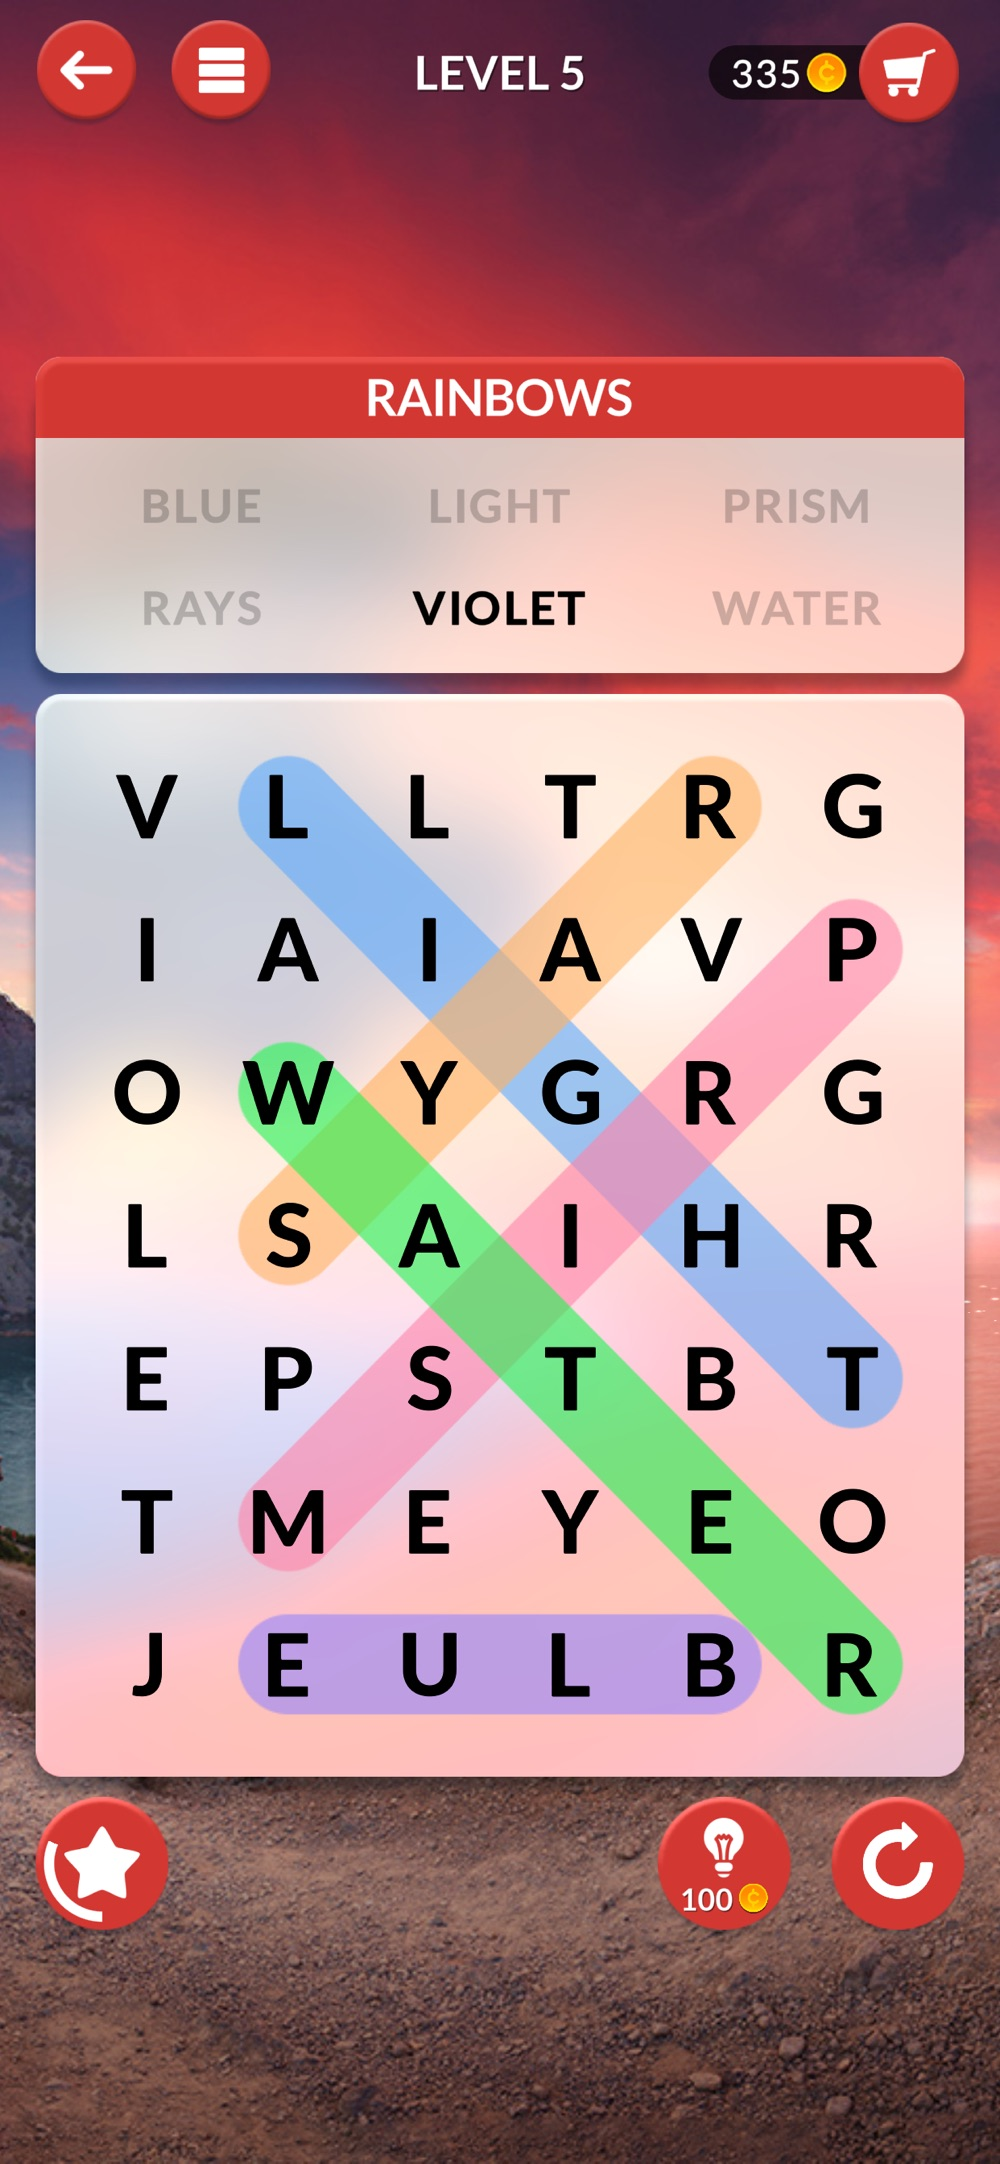 Wordscapes Search hack tool